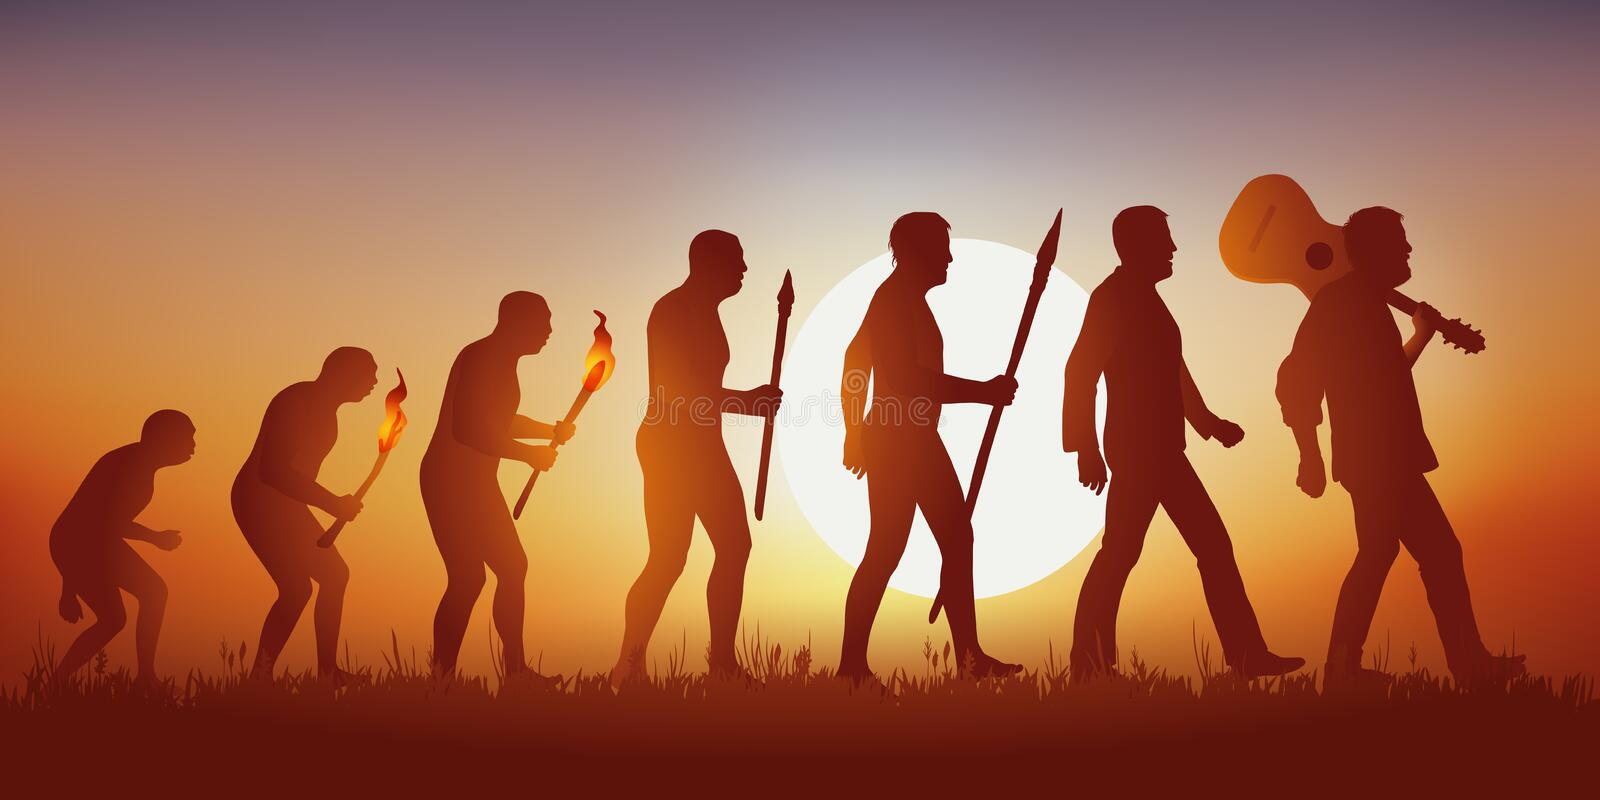 The evolution of humanity according to Darwin halted in its advance by an authoritarian man. royalty free illustration